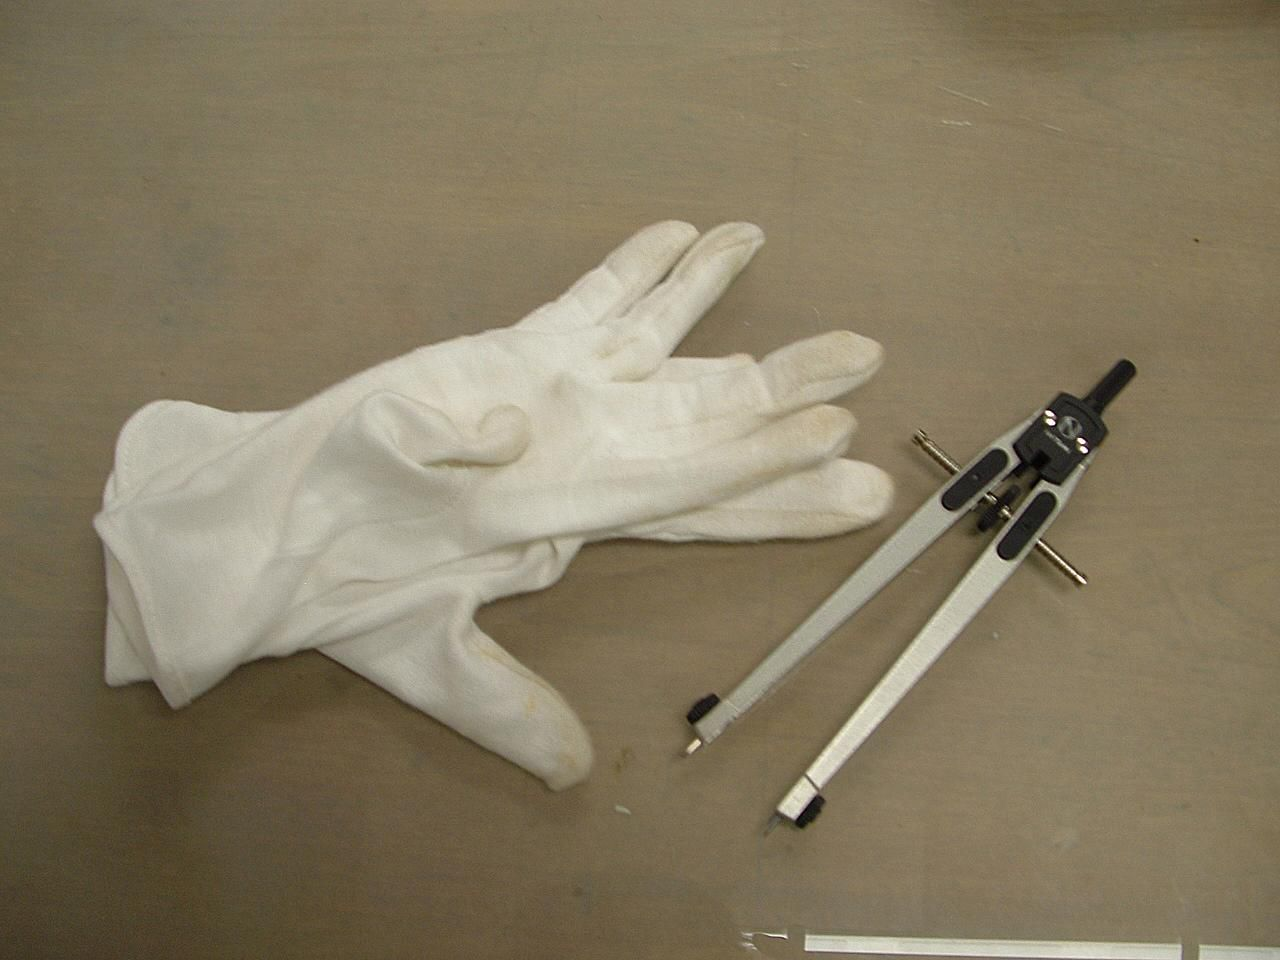 Calipers and cotton gloves are used during the analysis of artifacts.